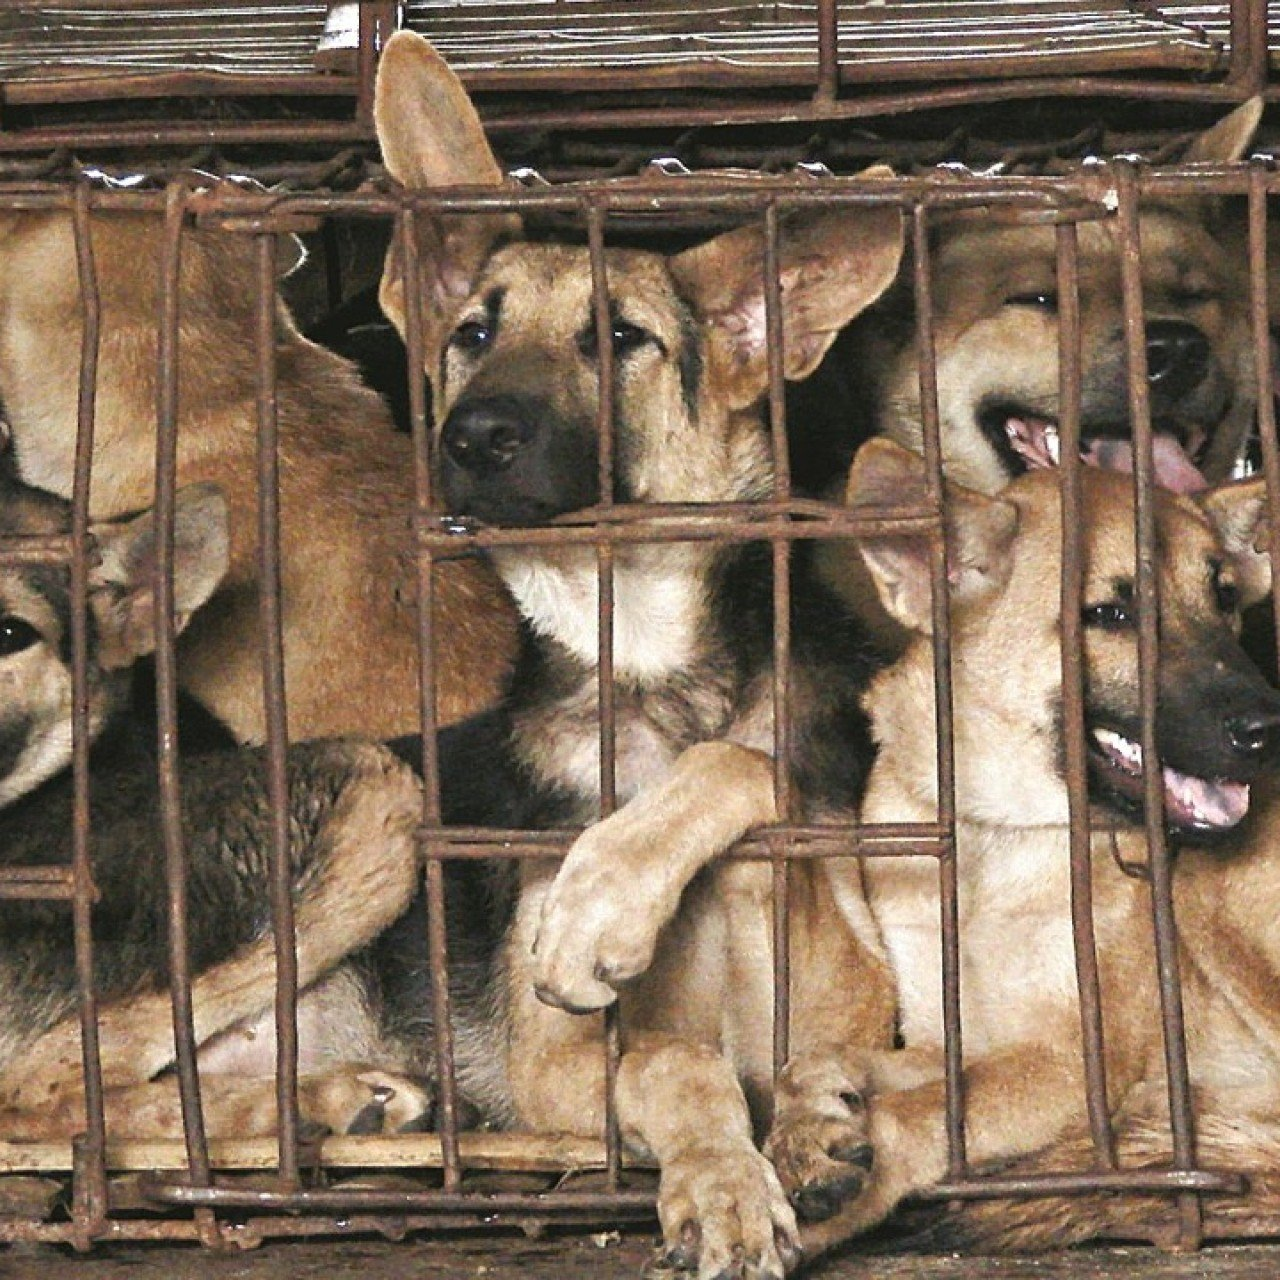 Asia's booming dog meat business and the activists seeking